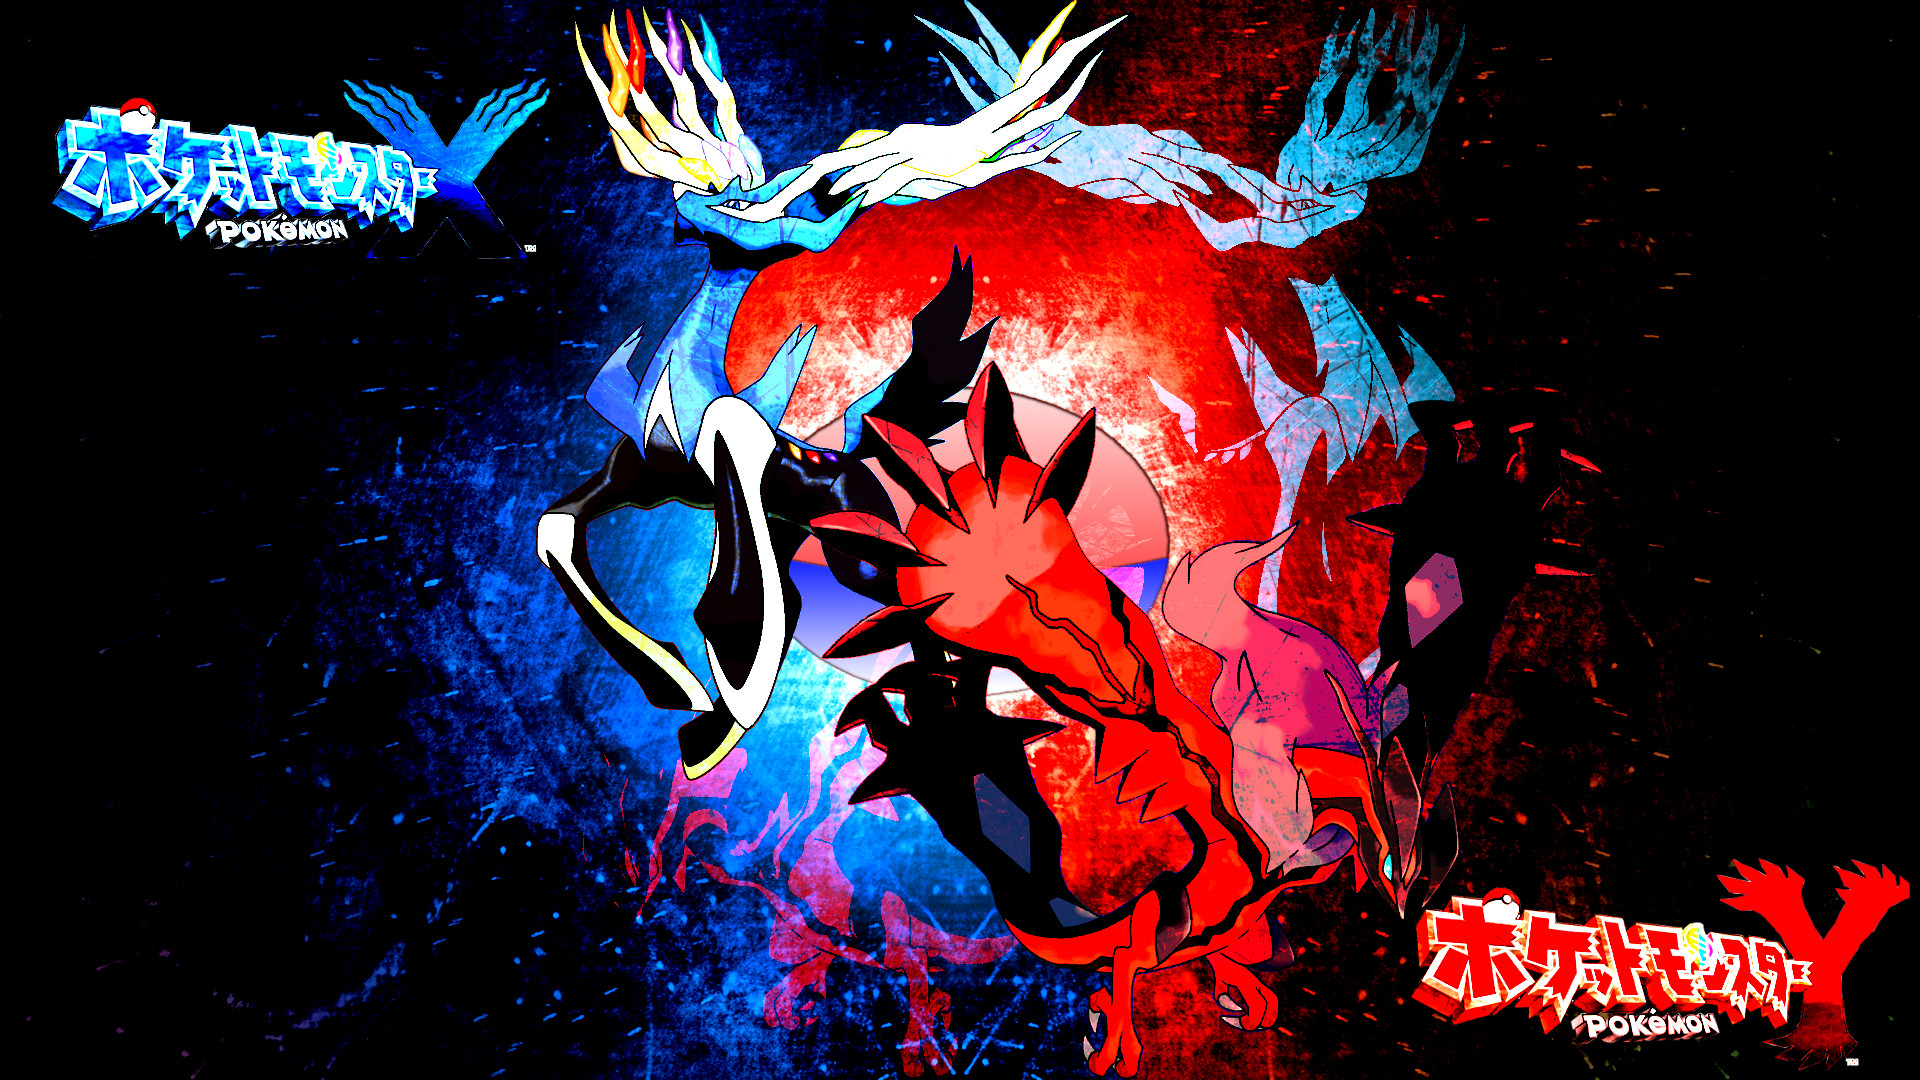 Res: 1920x1080, ... Pokemon X and Y: Xerneas and Yveltal by FRUITYNITE